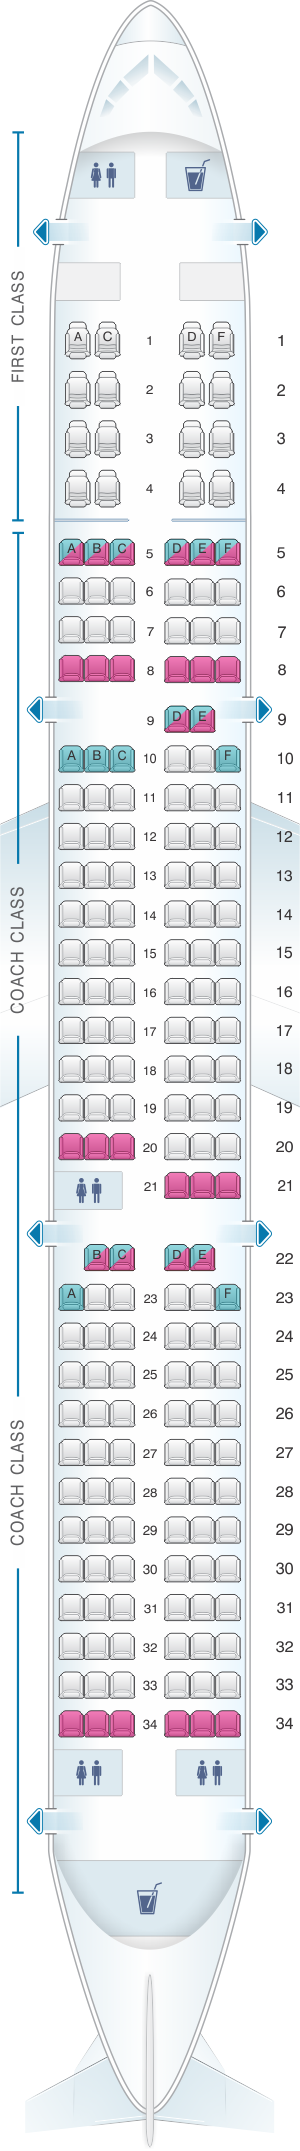 Seat map for US Airways Airbus A321